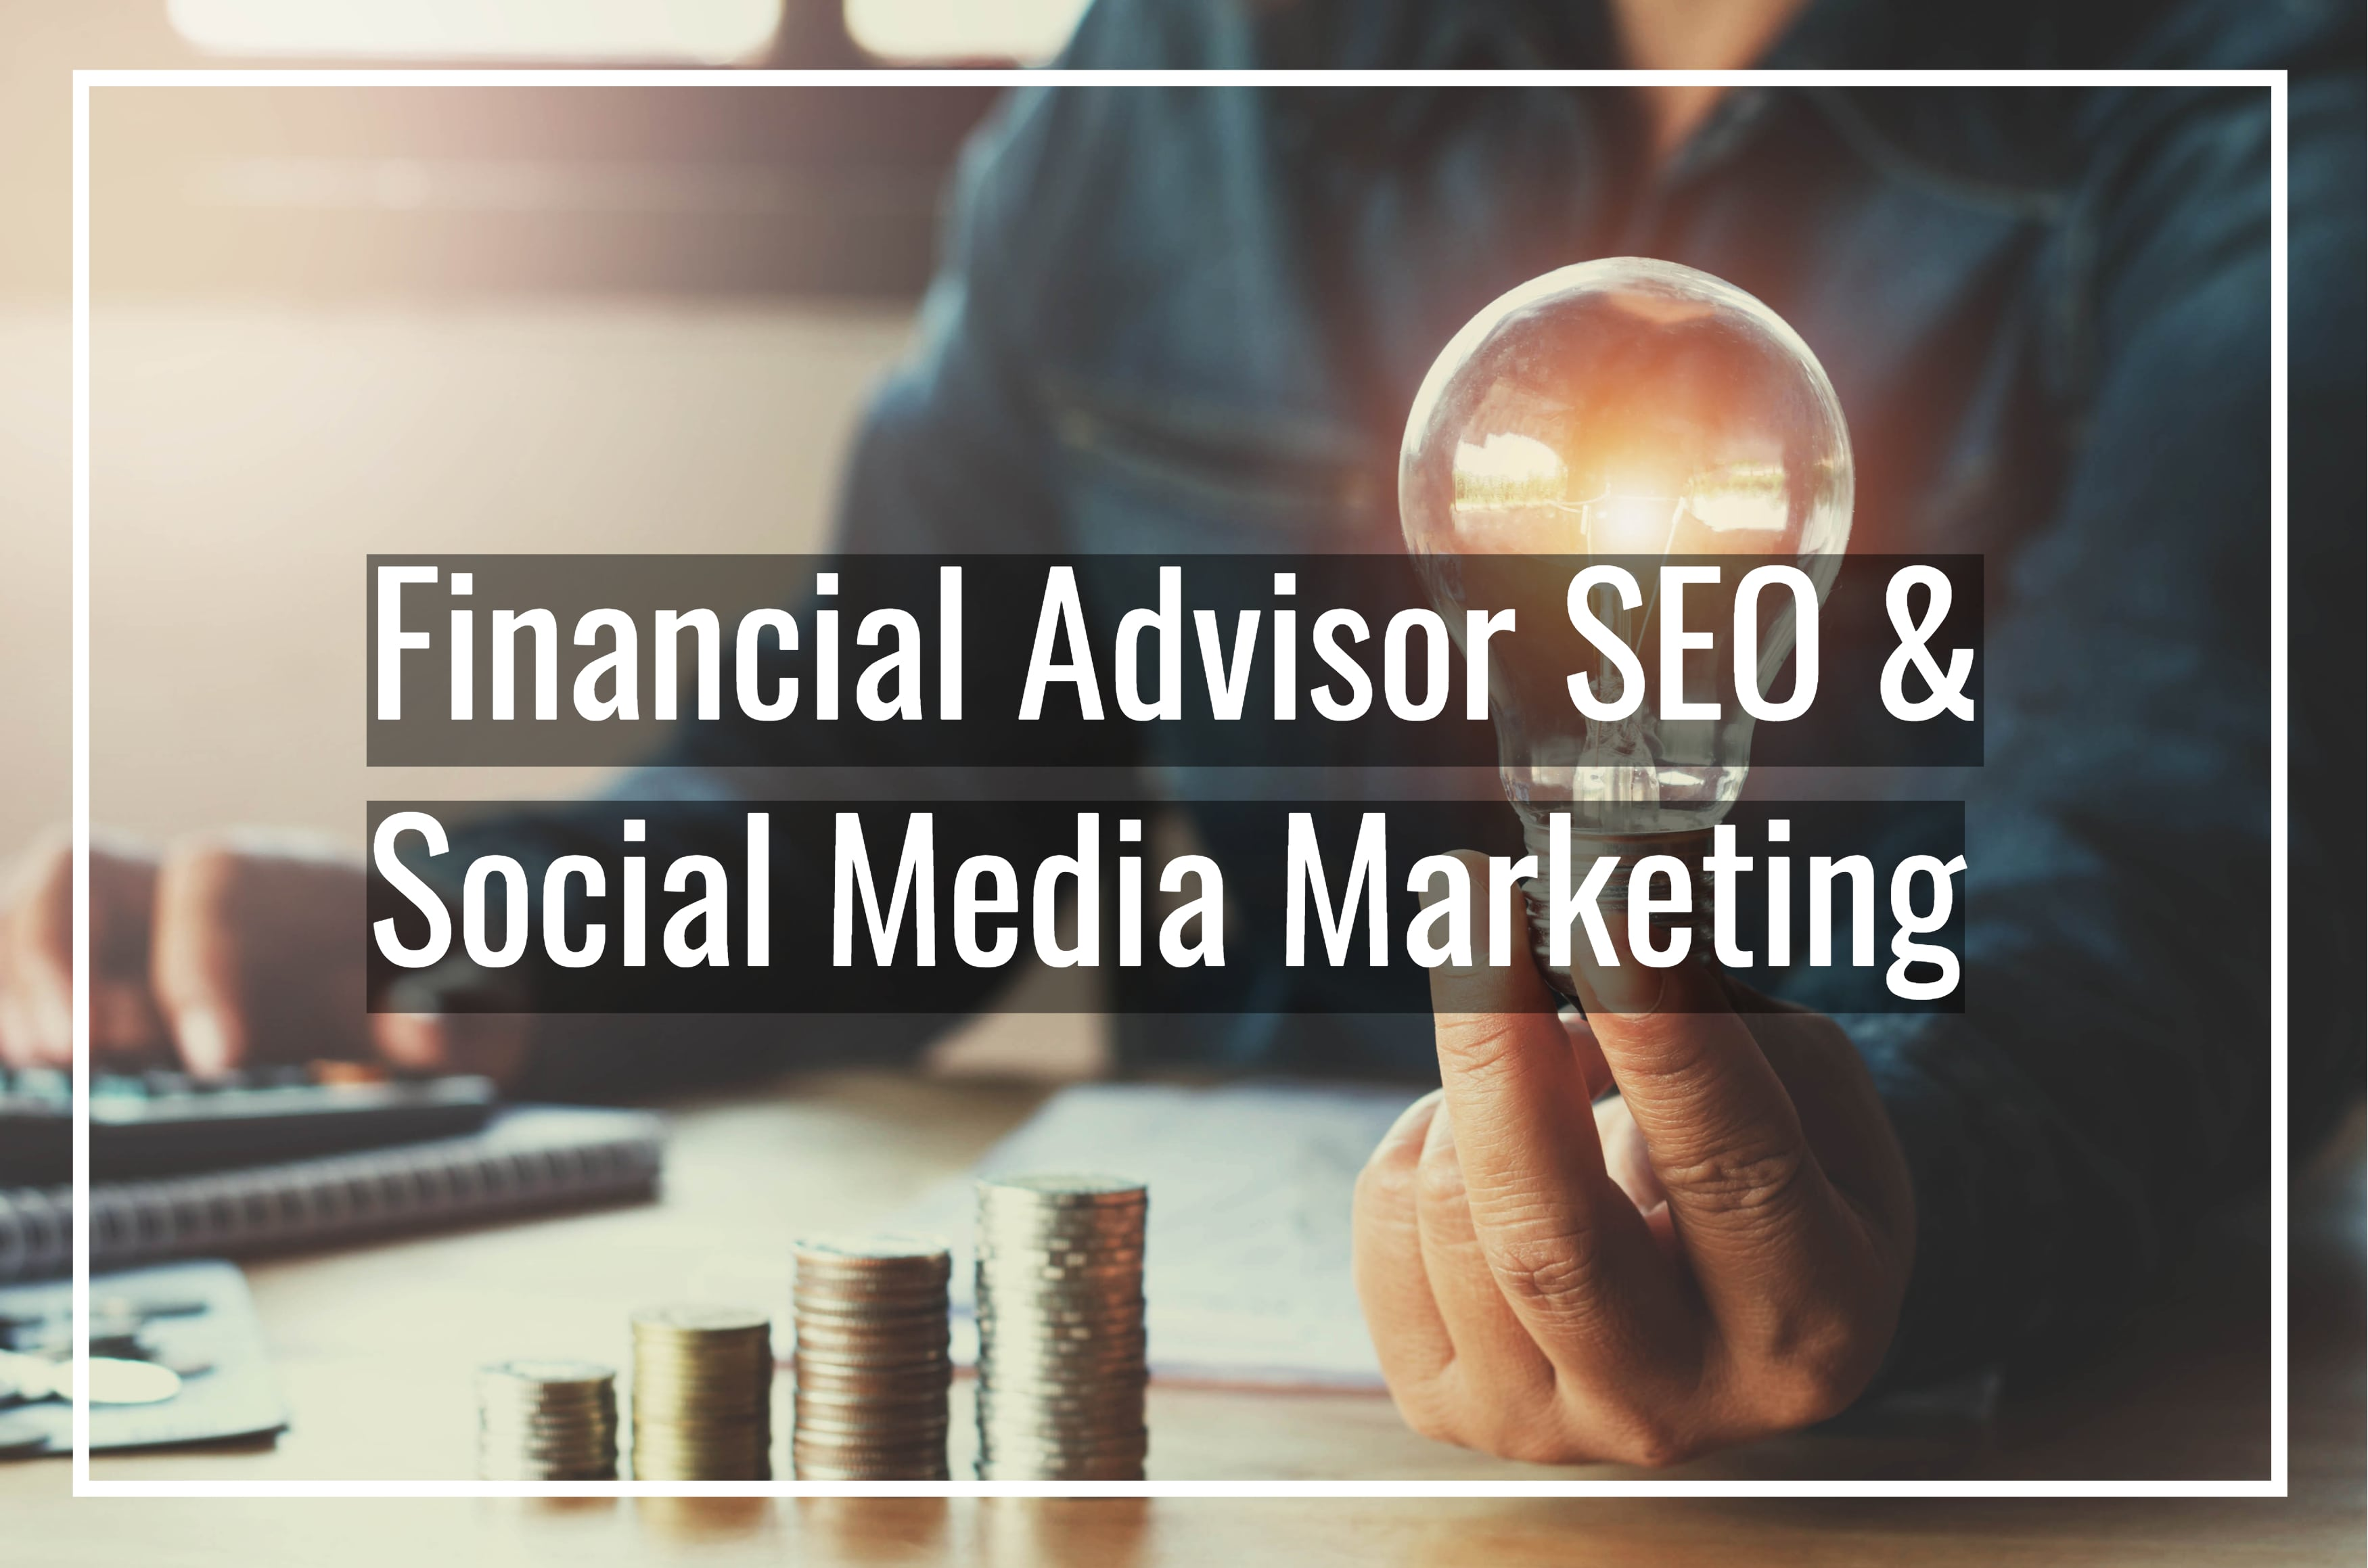 Financial Advisor SEO & Social Media Marketing